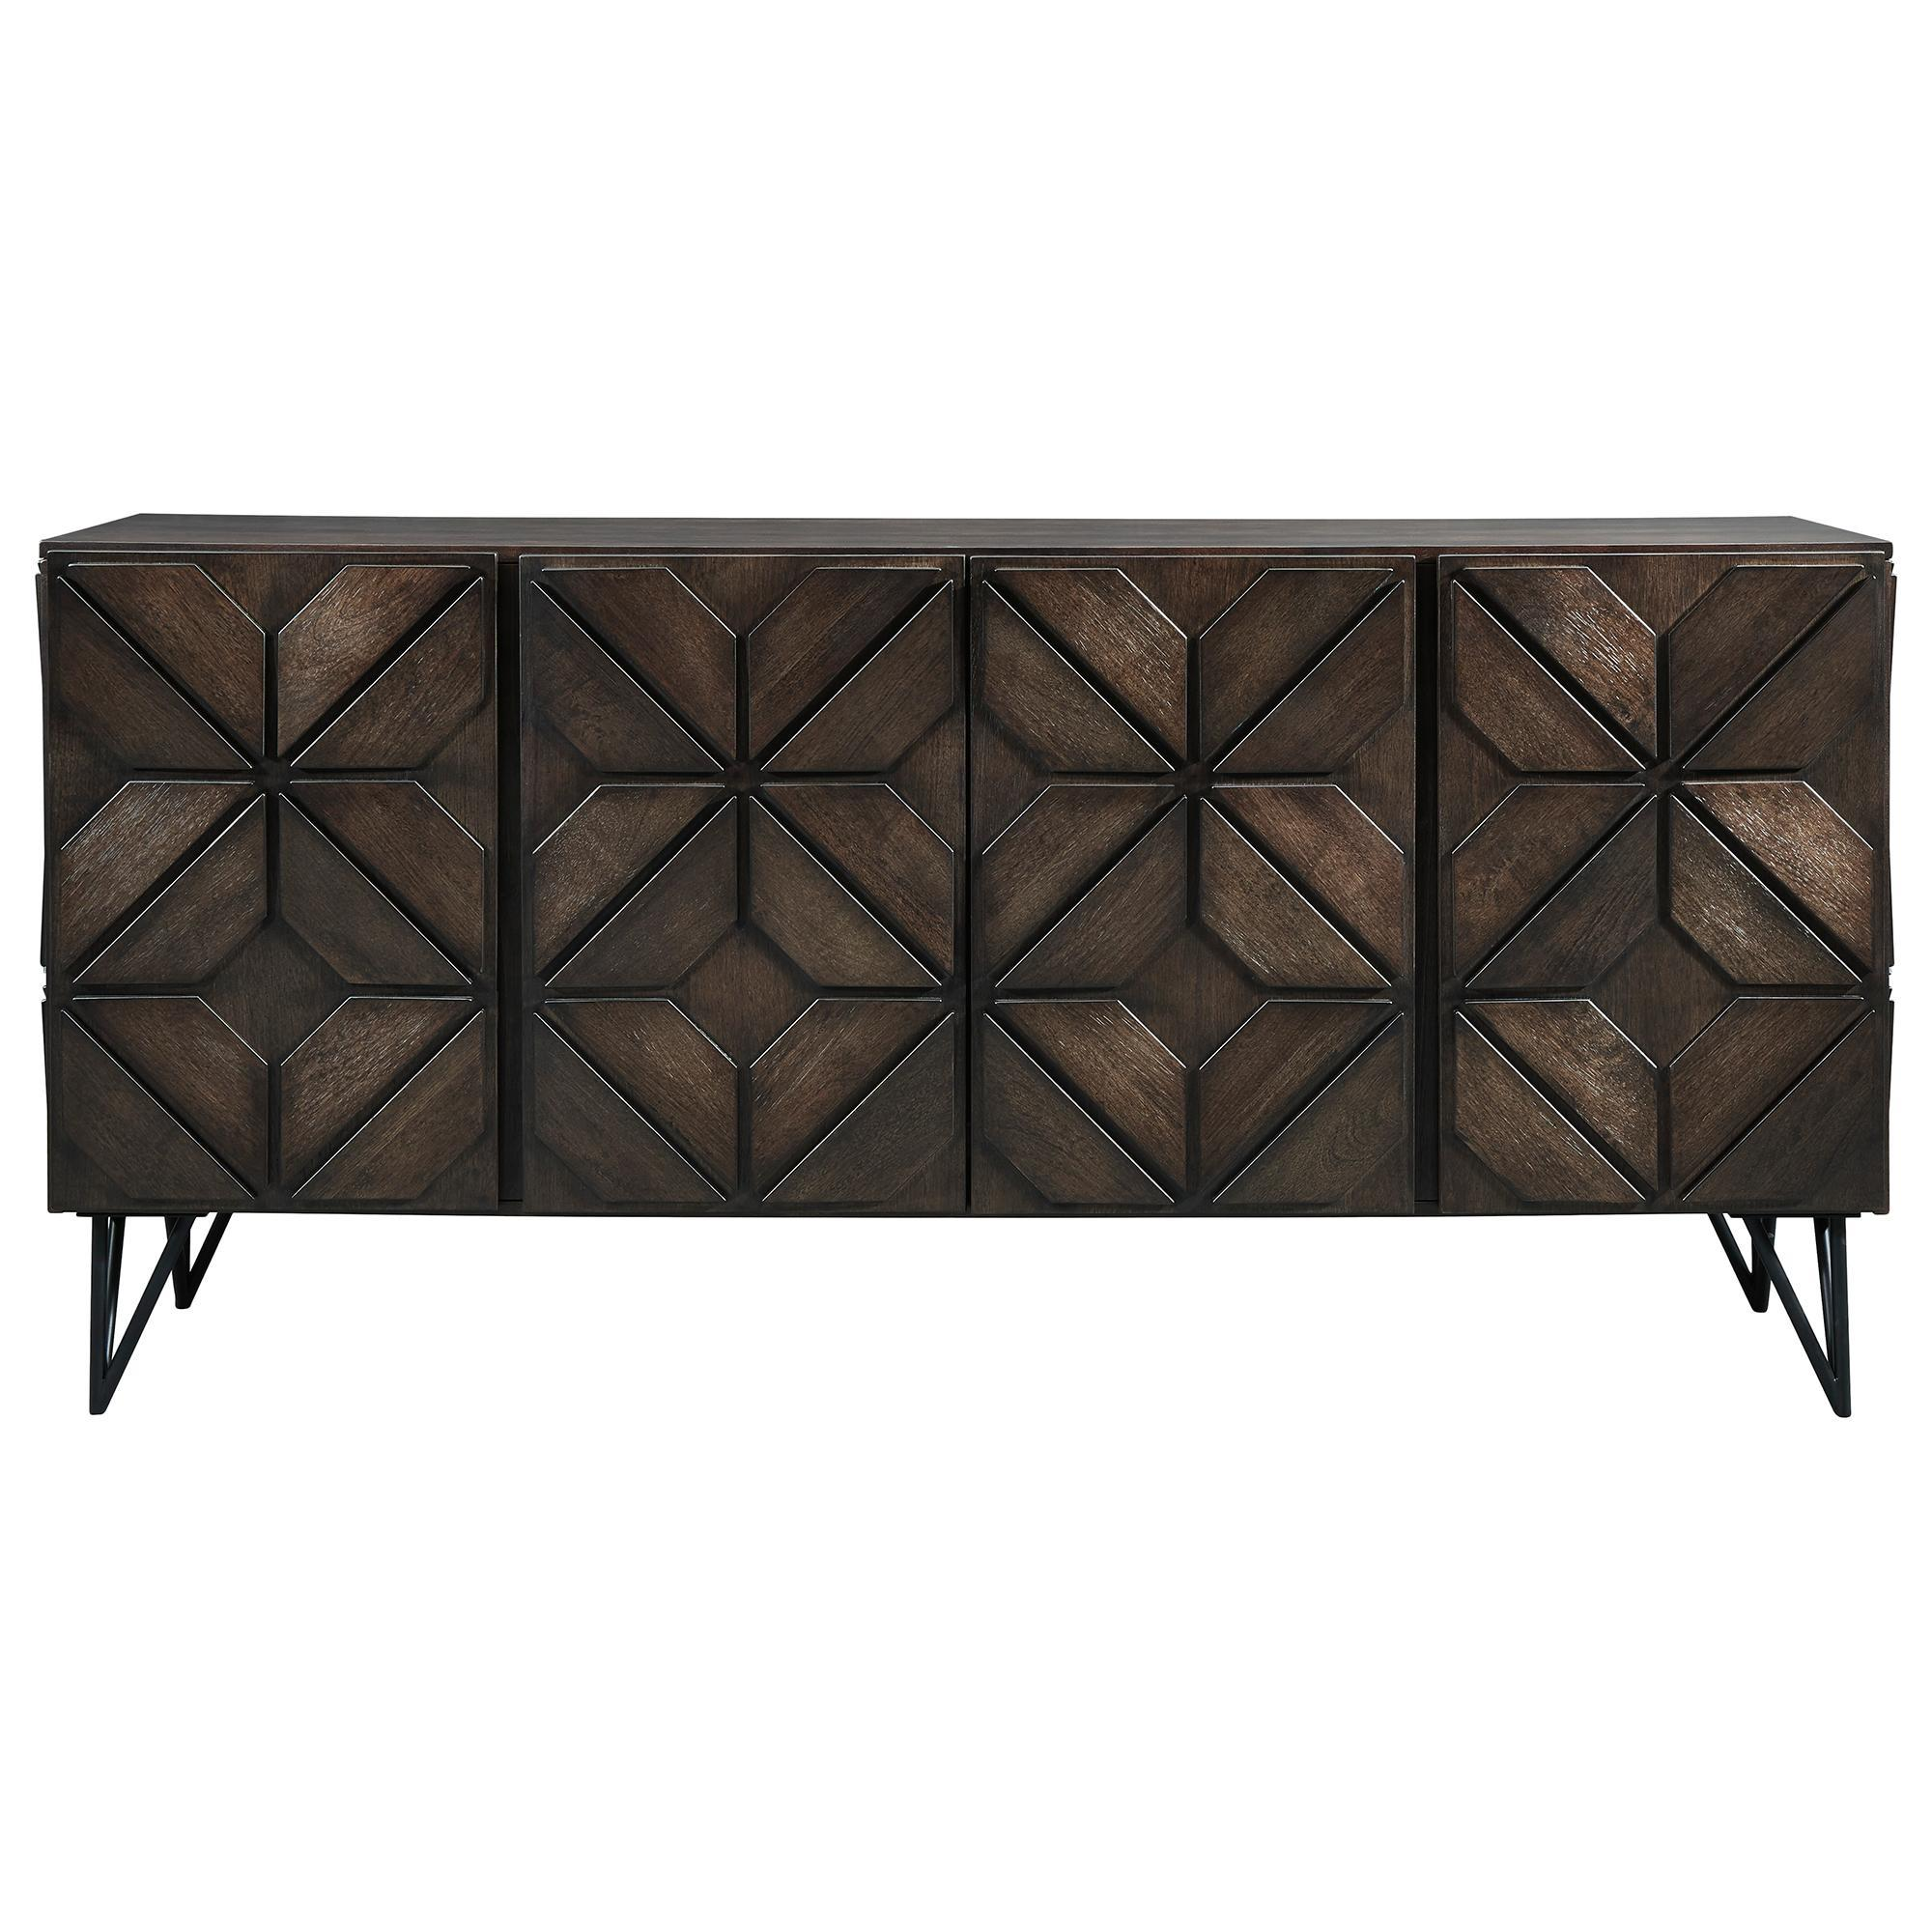 Signature Design By Ashley Chasinfield, Large Living Room Layout Ideas With Tv Stand Decoration